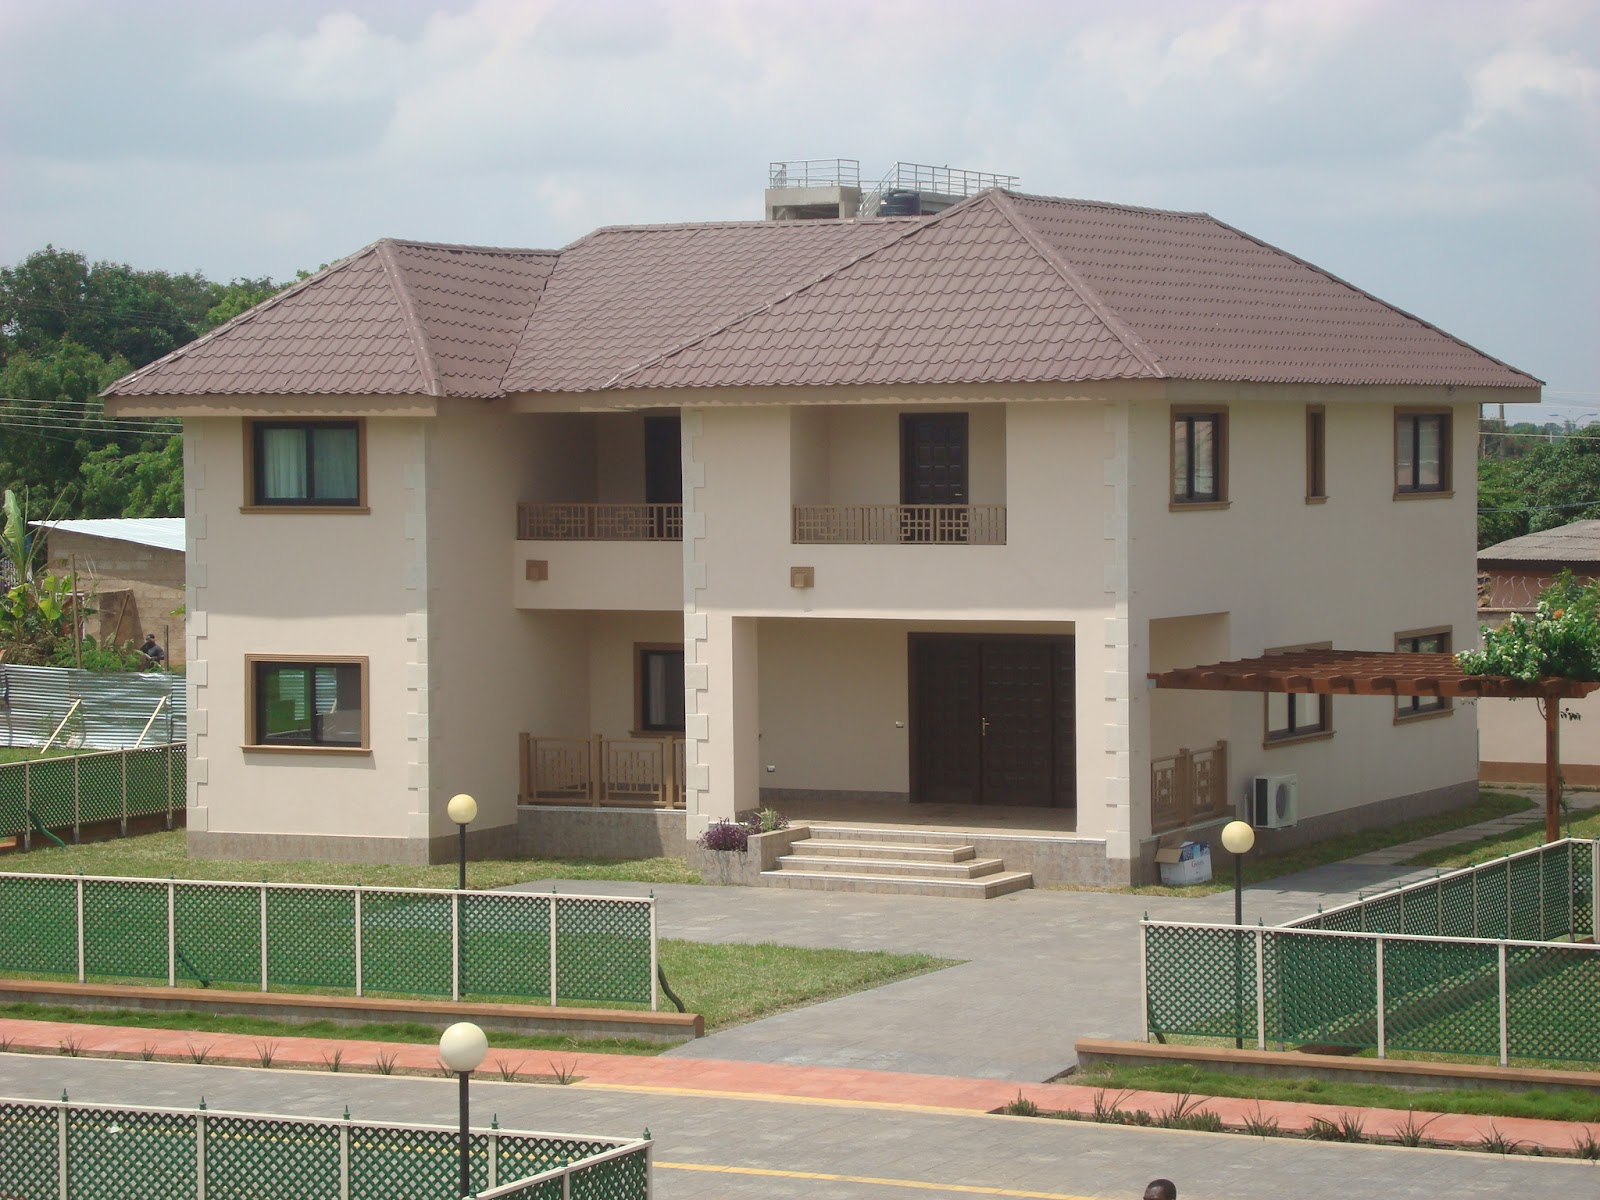 House for sale accra ghana fiore village gated community for House for sale pictures